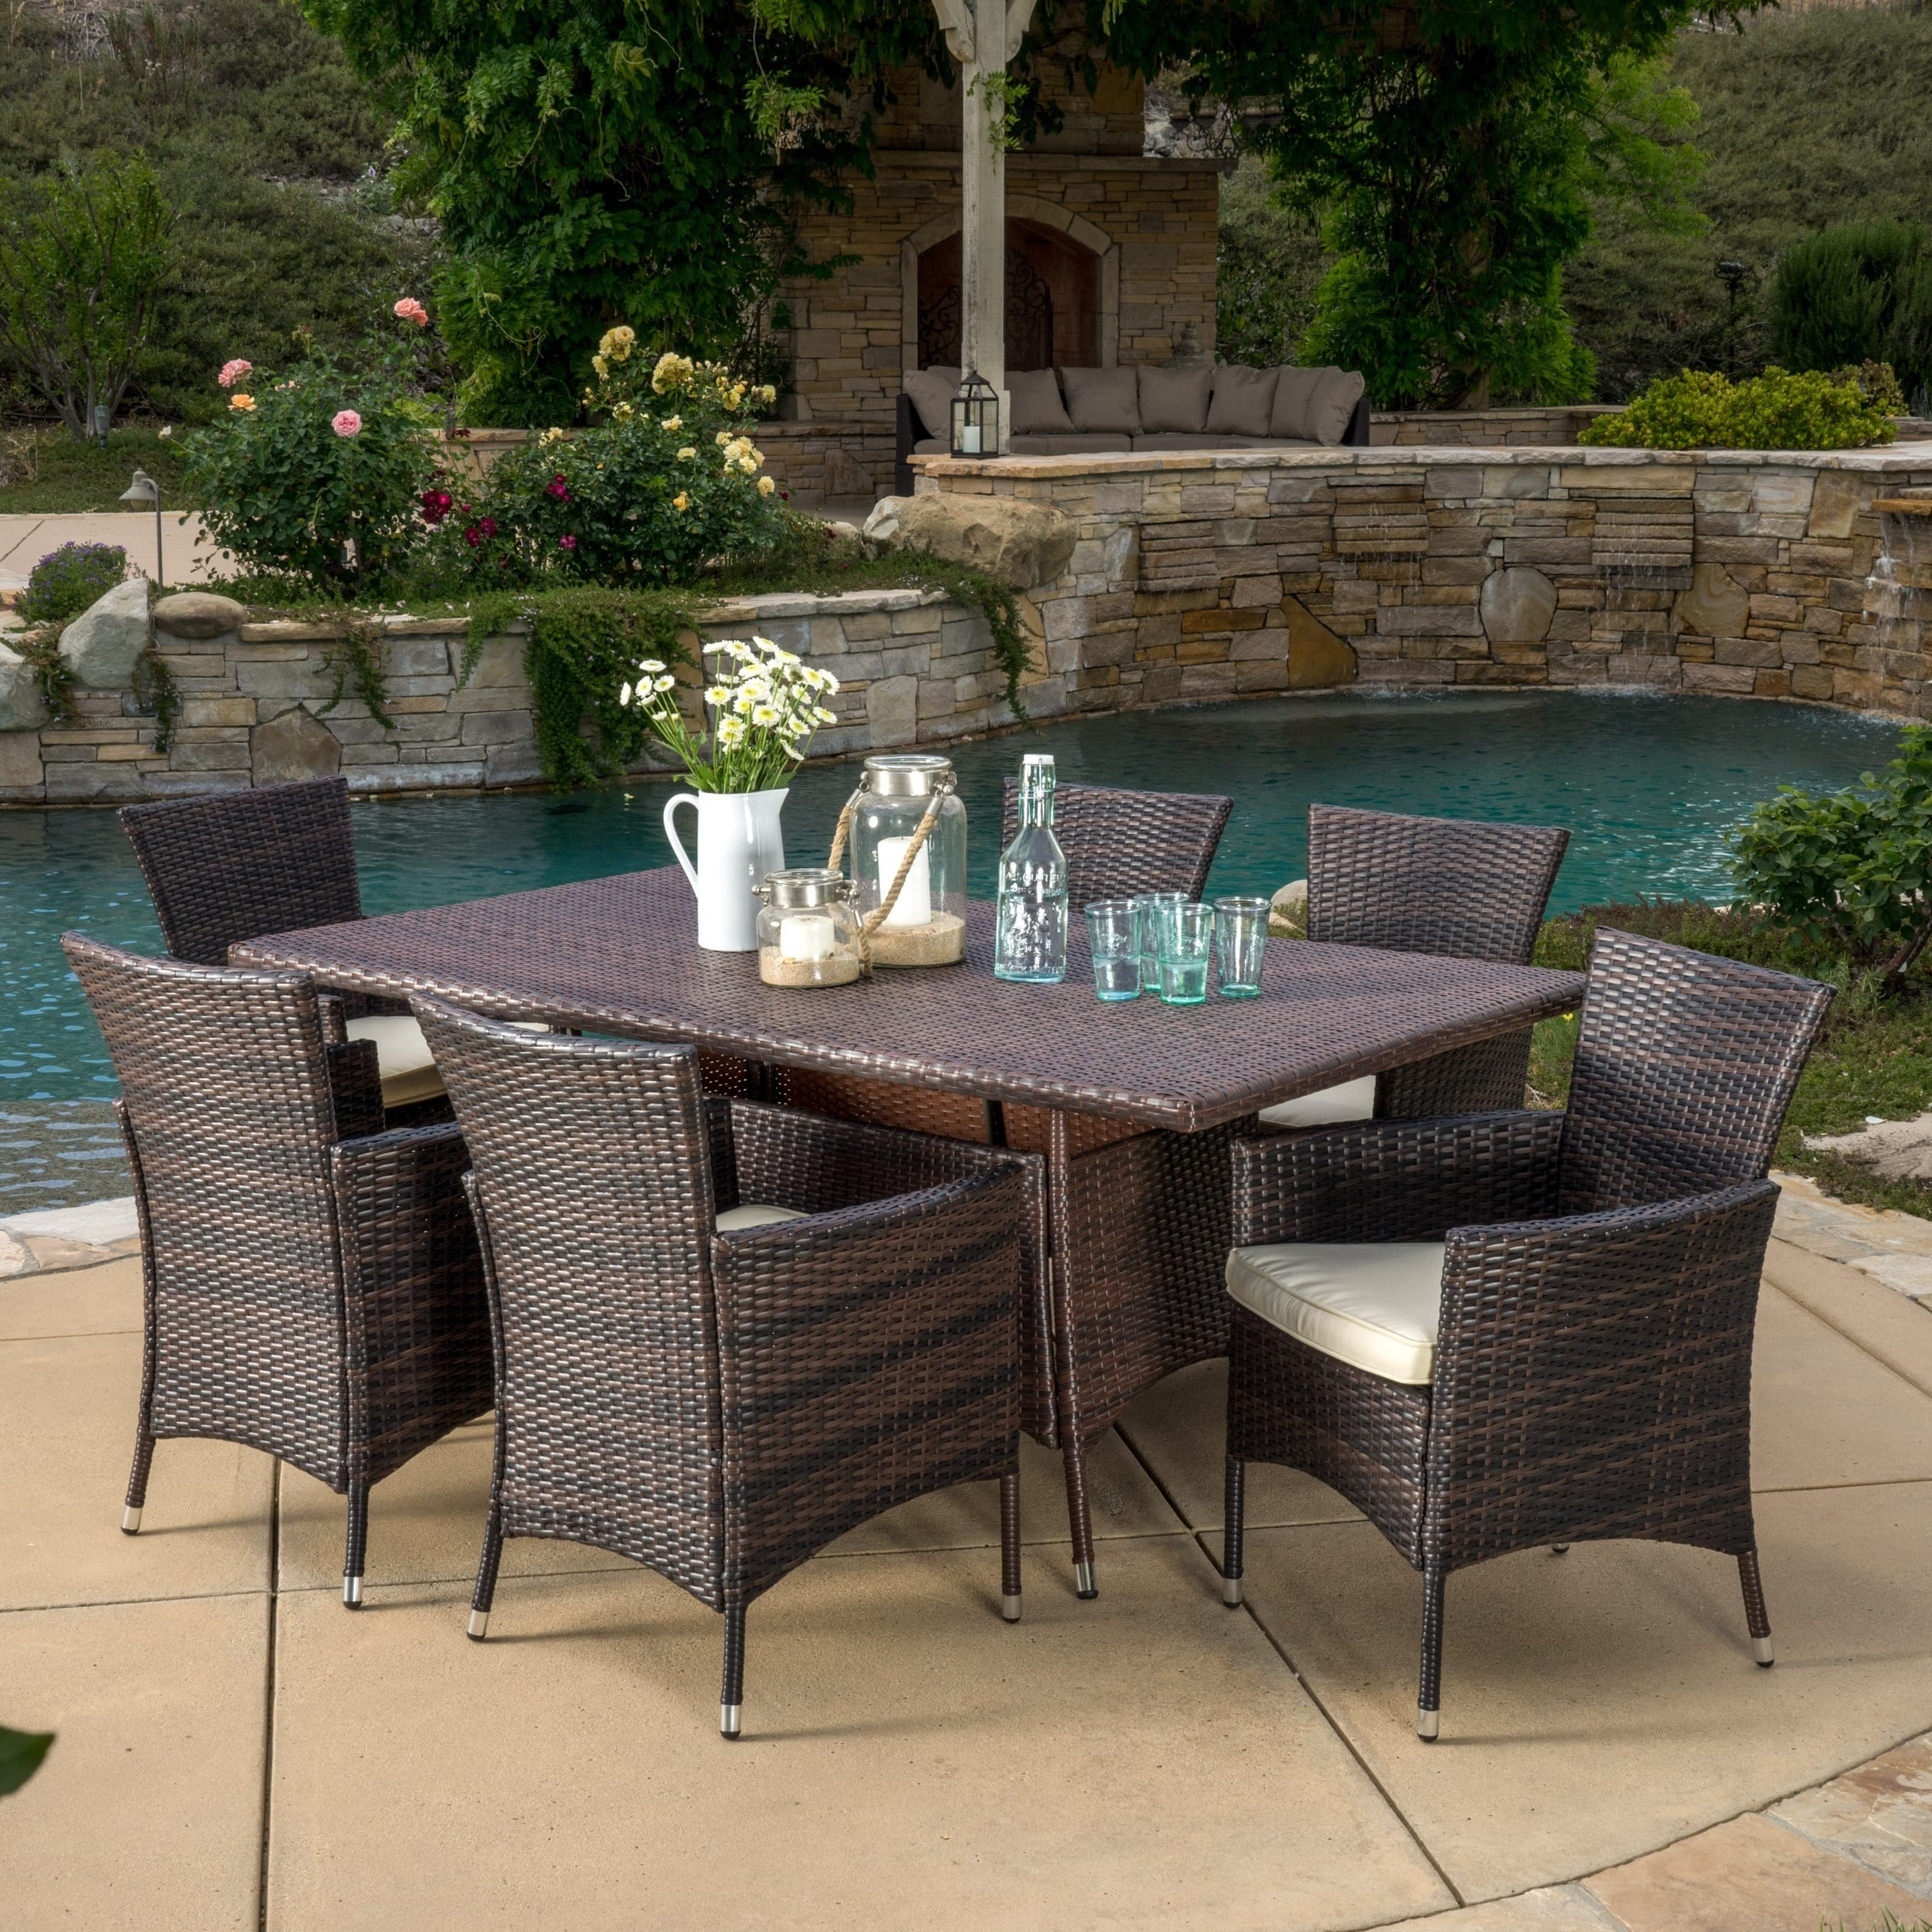 Christopher Knight Home Jennifer Outdoor 7-piece Wicker Dining Set with Cushions by